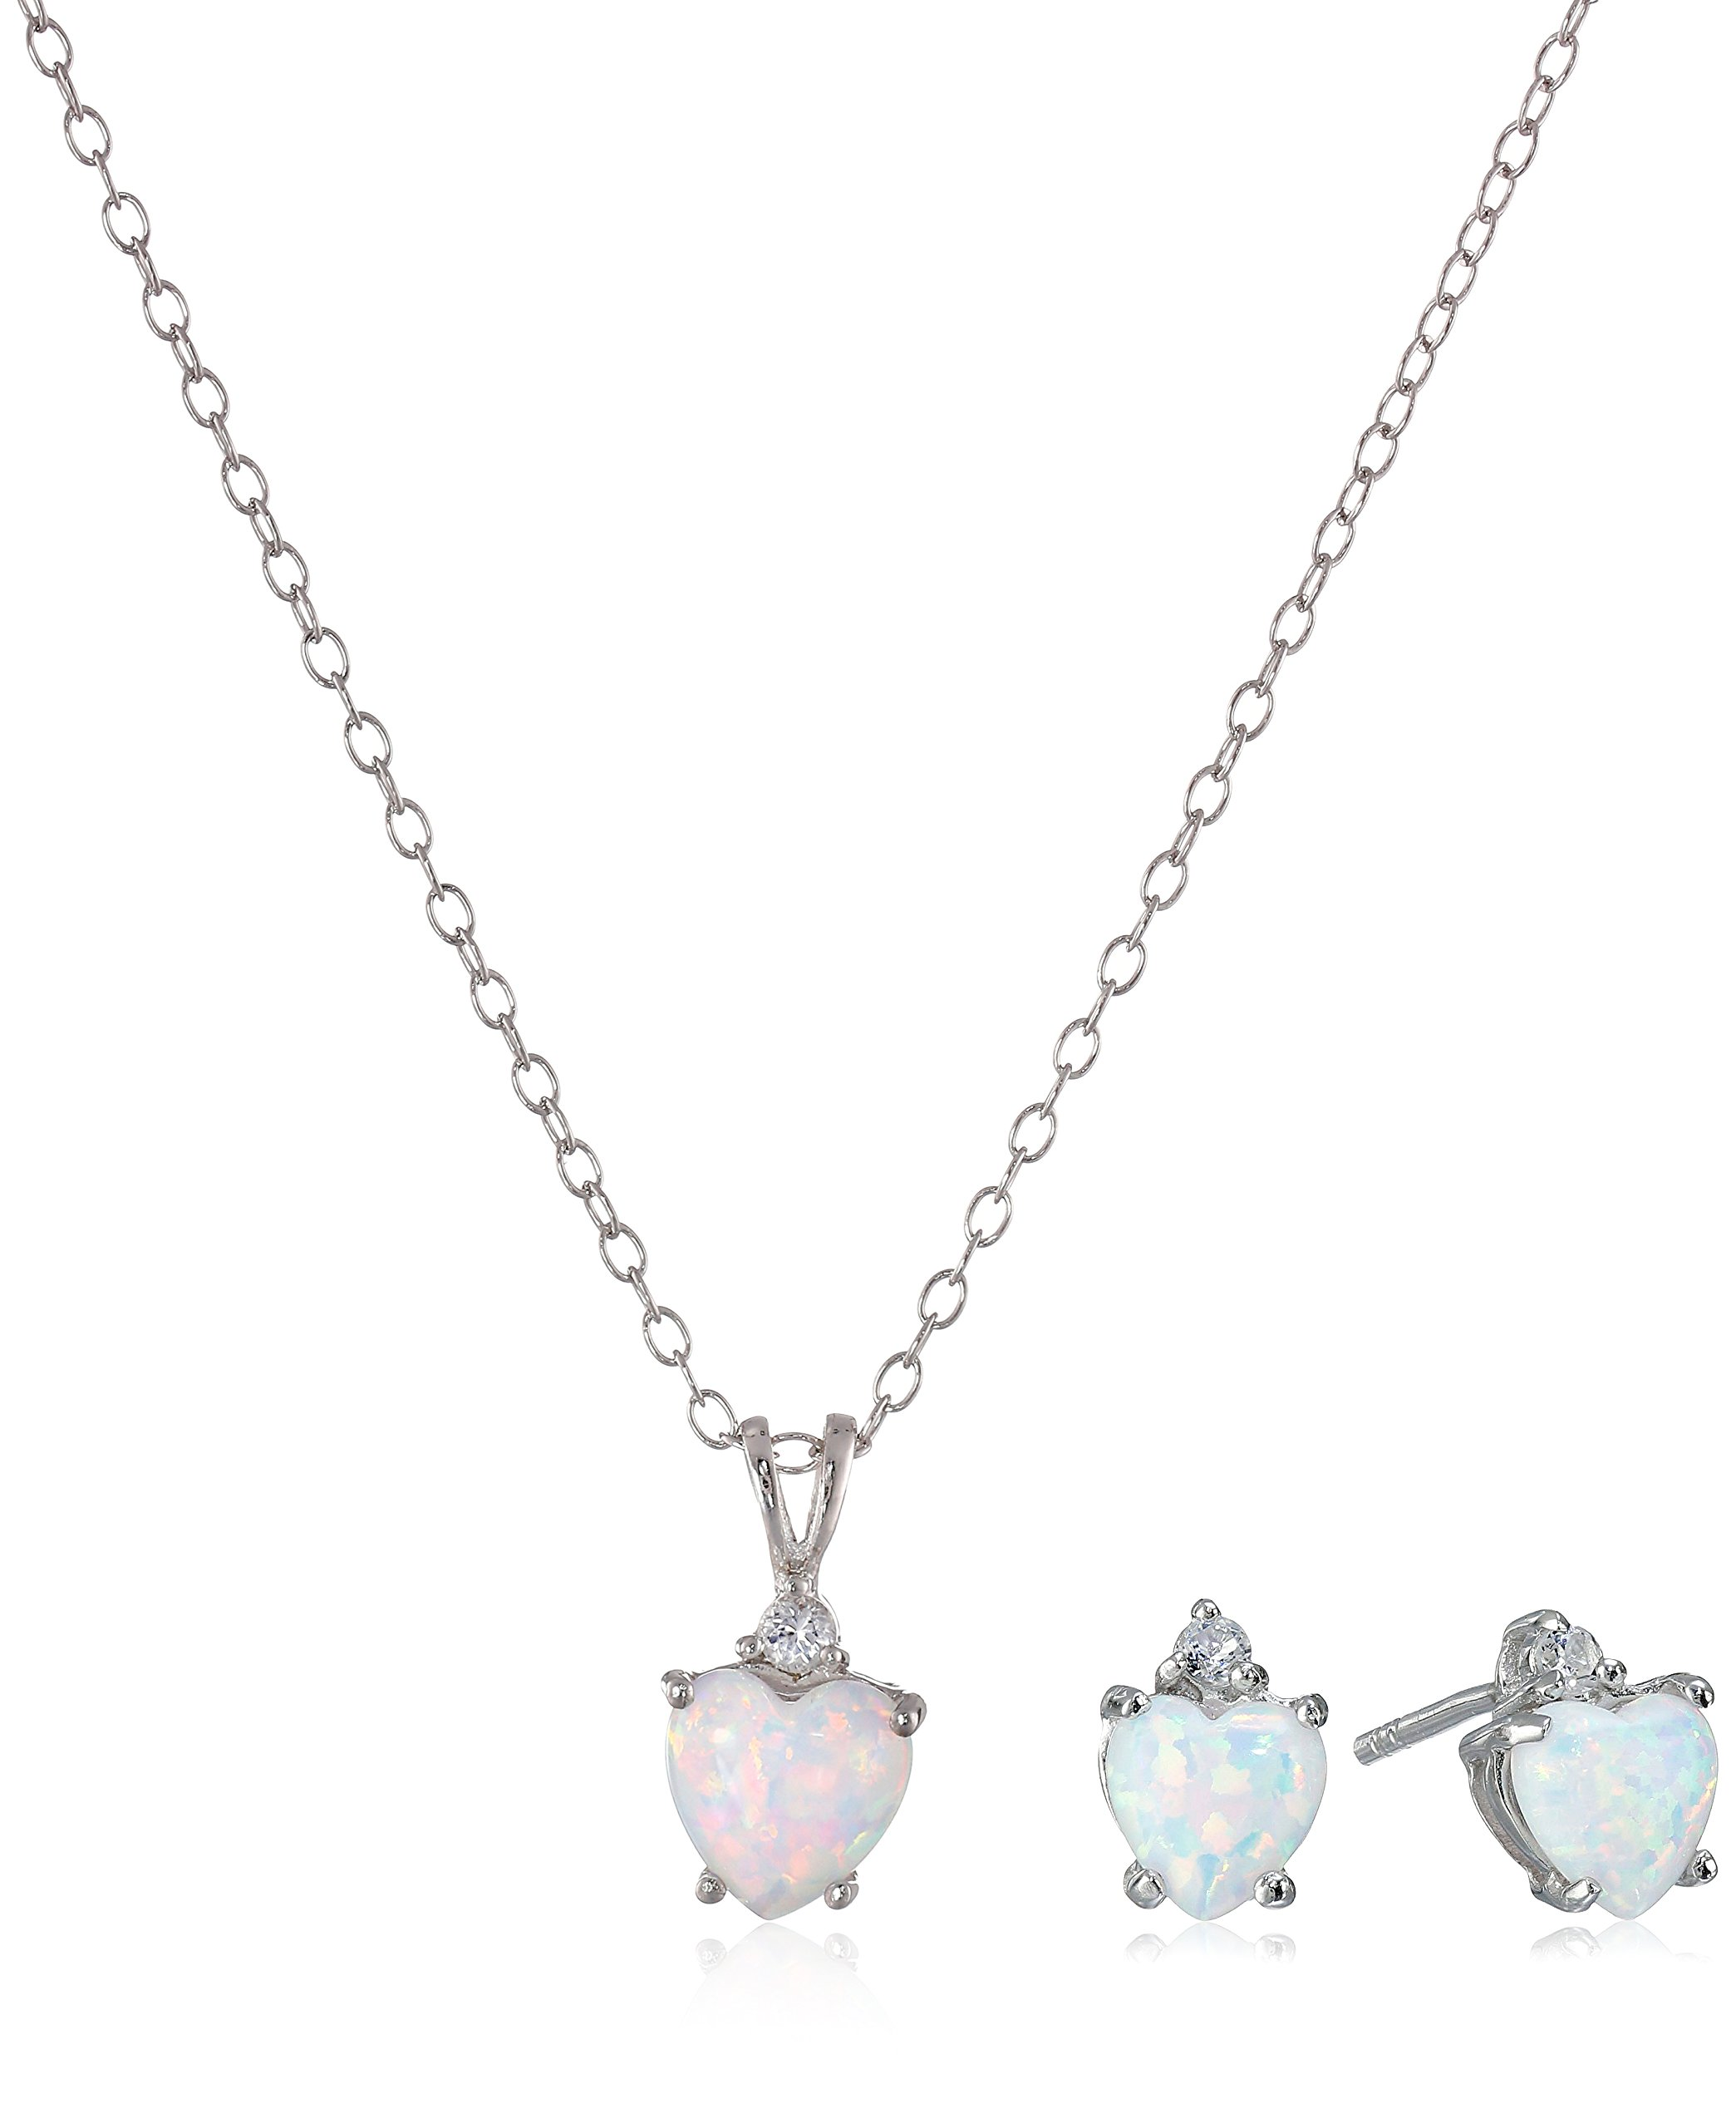 Sterling Silver Stud Earrings and Pendant Necklace with Created Opal Jewelry Set